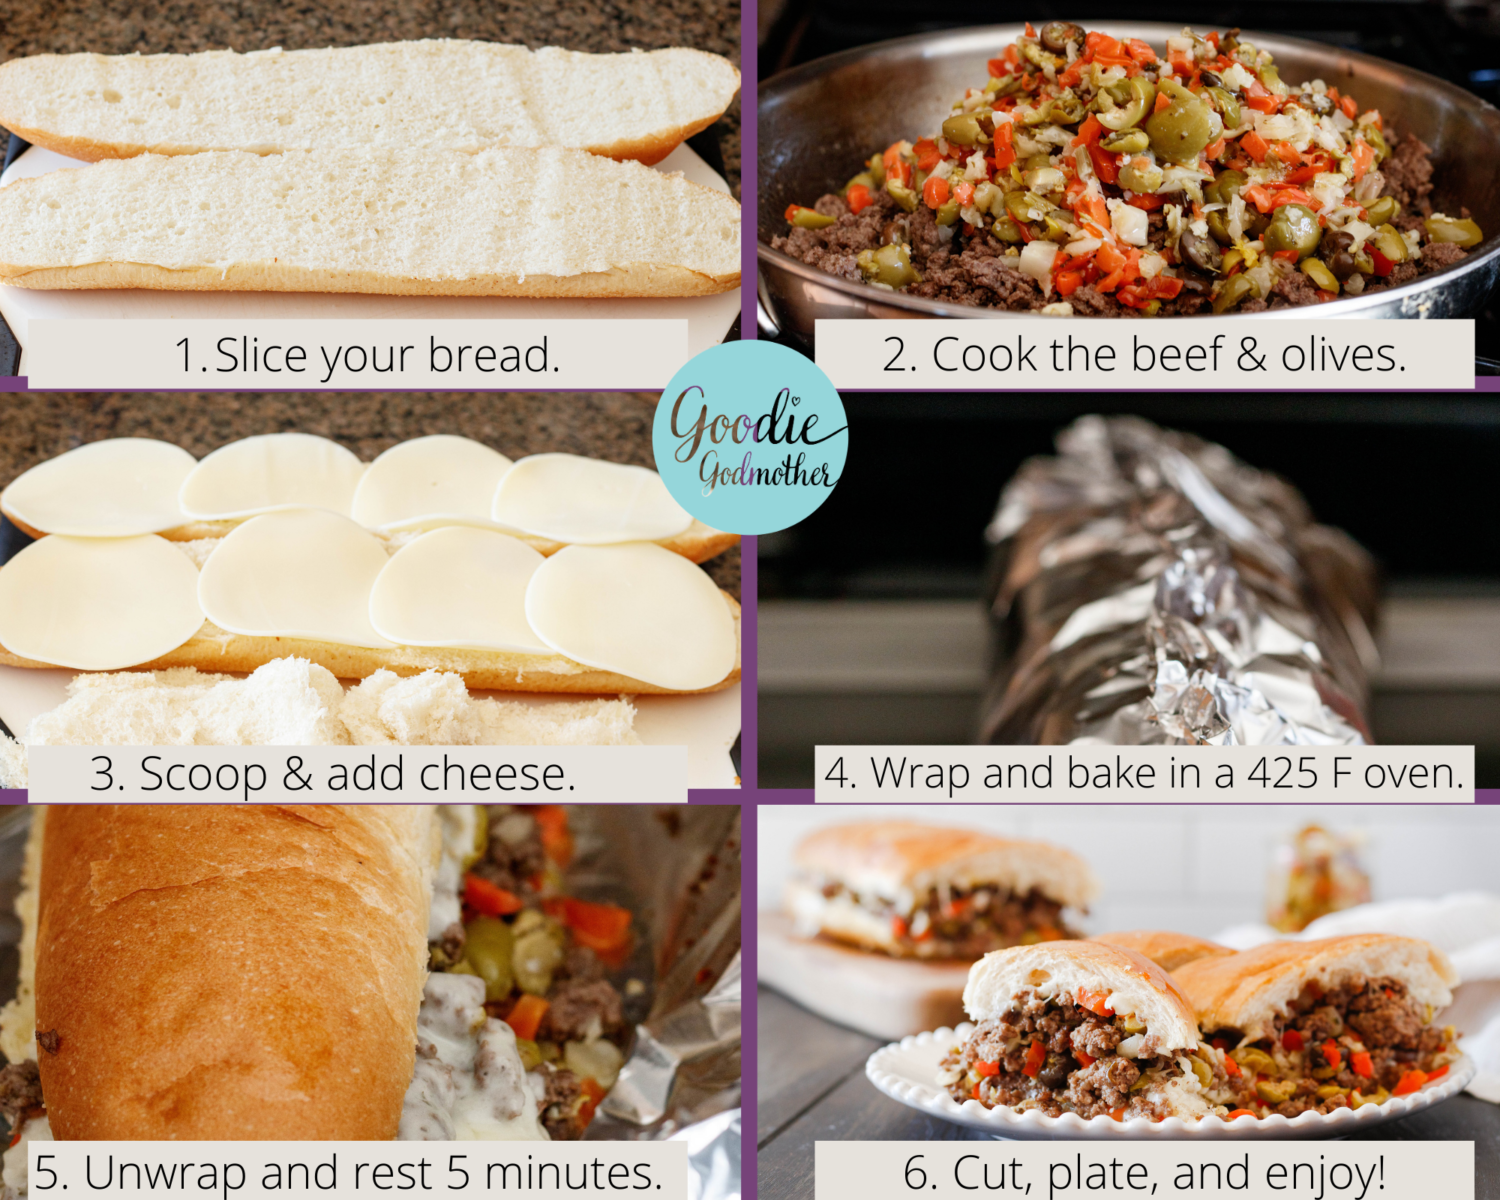 ground beef po' boy (aka the godfather sandwich) assembly infographic. Shows the 6 basic steps to building this delicious hot sub. 1. Slice the bread. 2. Cook your filling. 3. Scoop the loaf and add your cheese. 4. Wrap the filled sandwich in foil. 5. Bake until the cheese has melted. 6. Slice and enjoy!